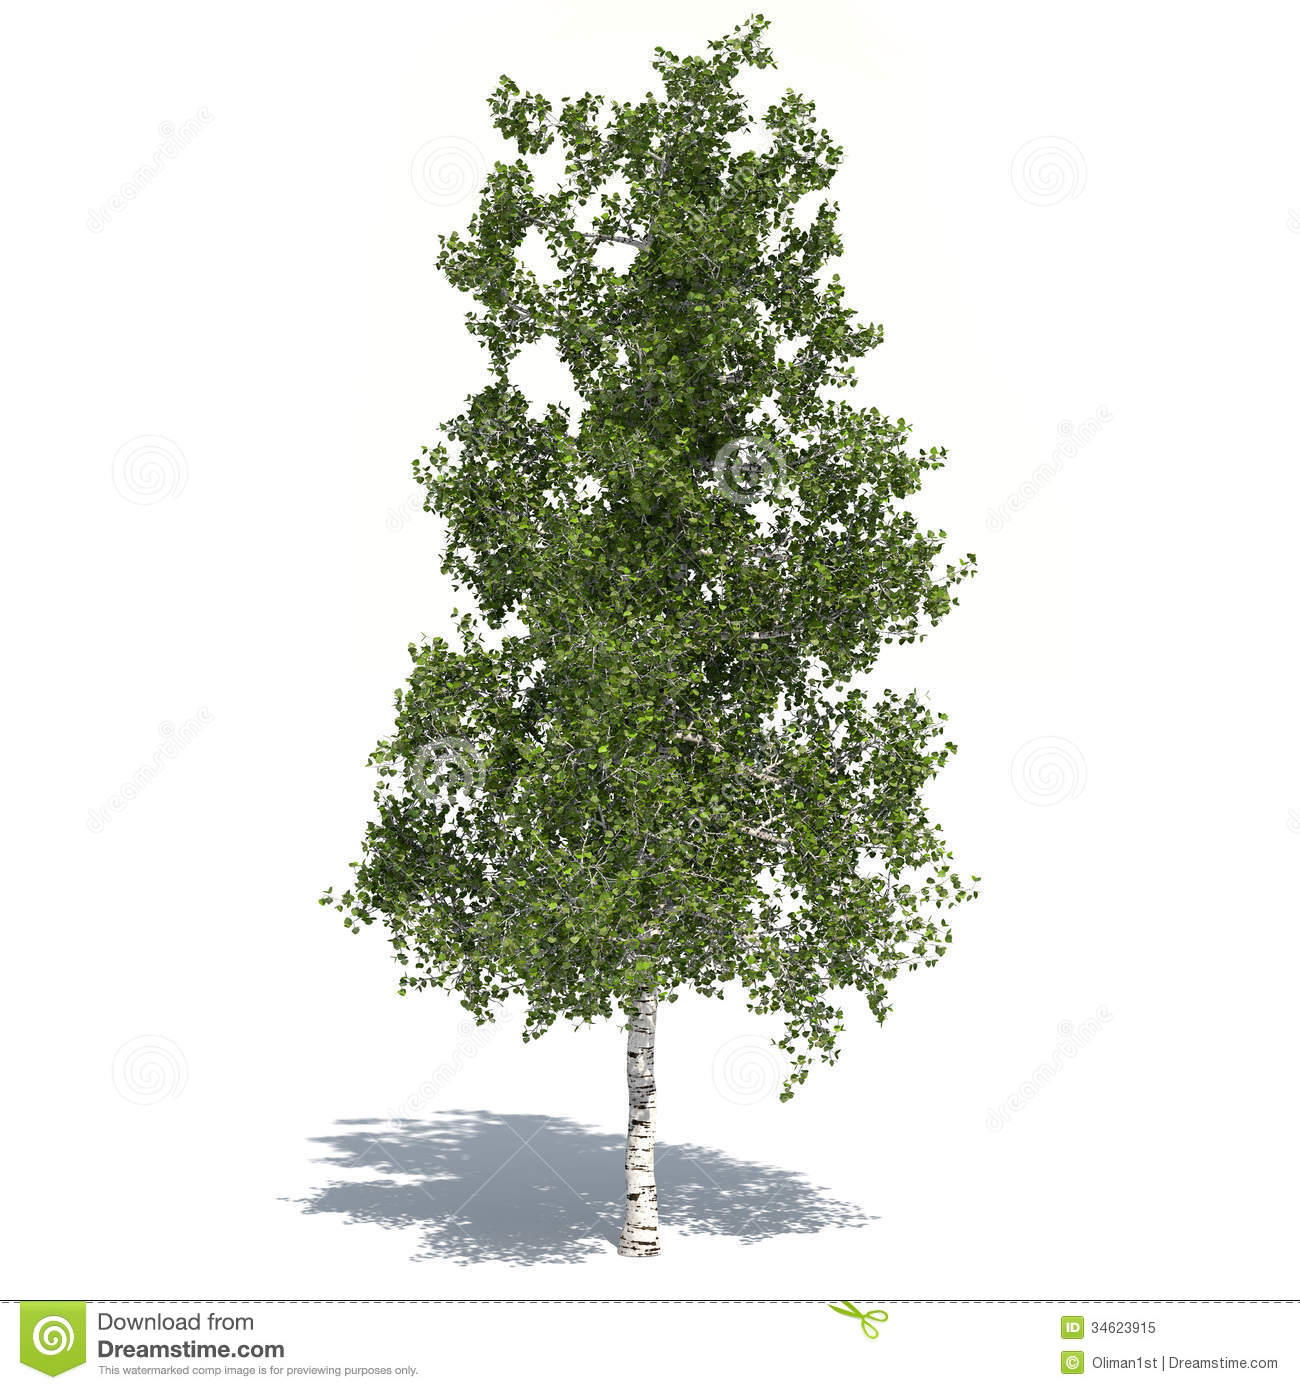 Birch Tree 3d Illustrated Royalty Free Stock Photo - Image: 34623915